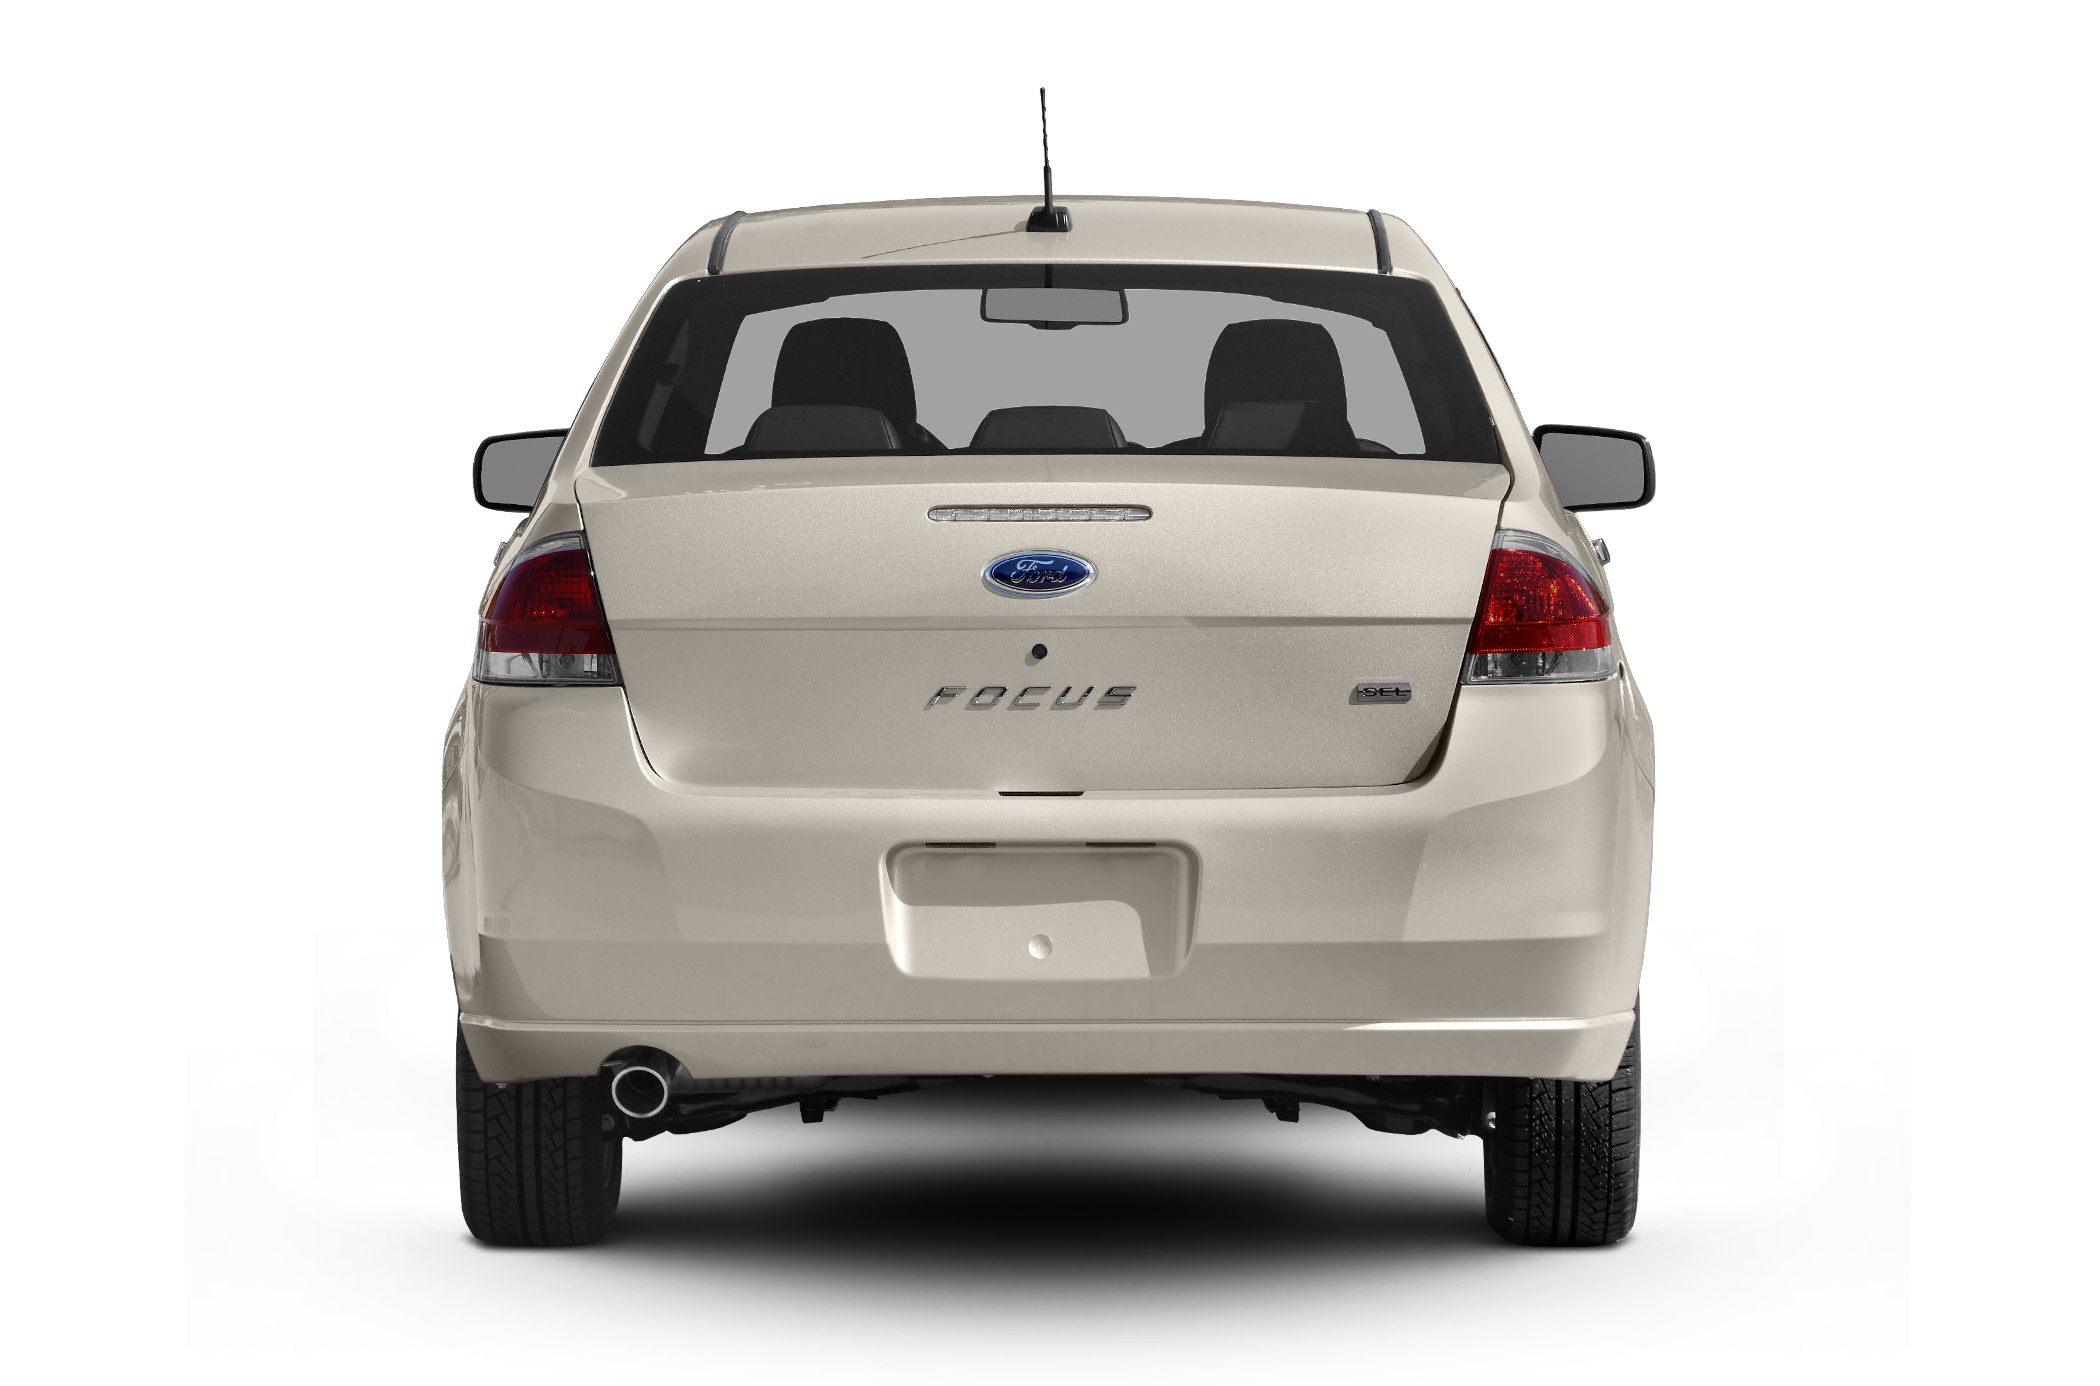 hight resolution of used 2010 ford focus for sale in buckner near louisville ky vin 1fahp3fn5aw176811